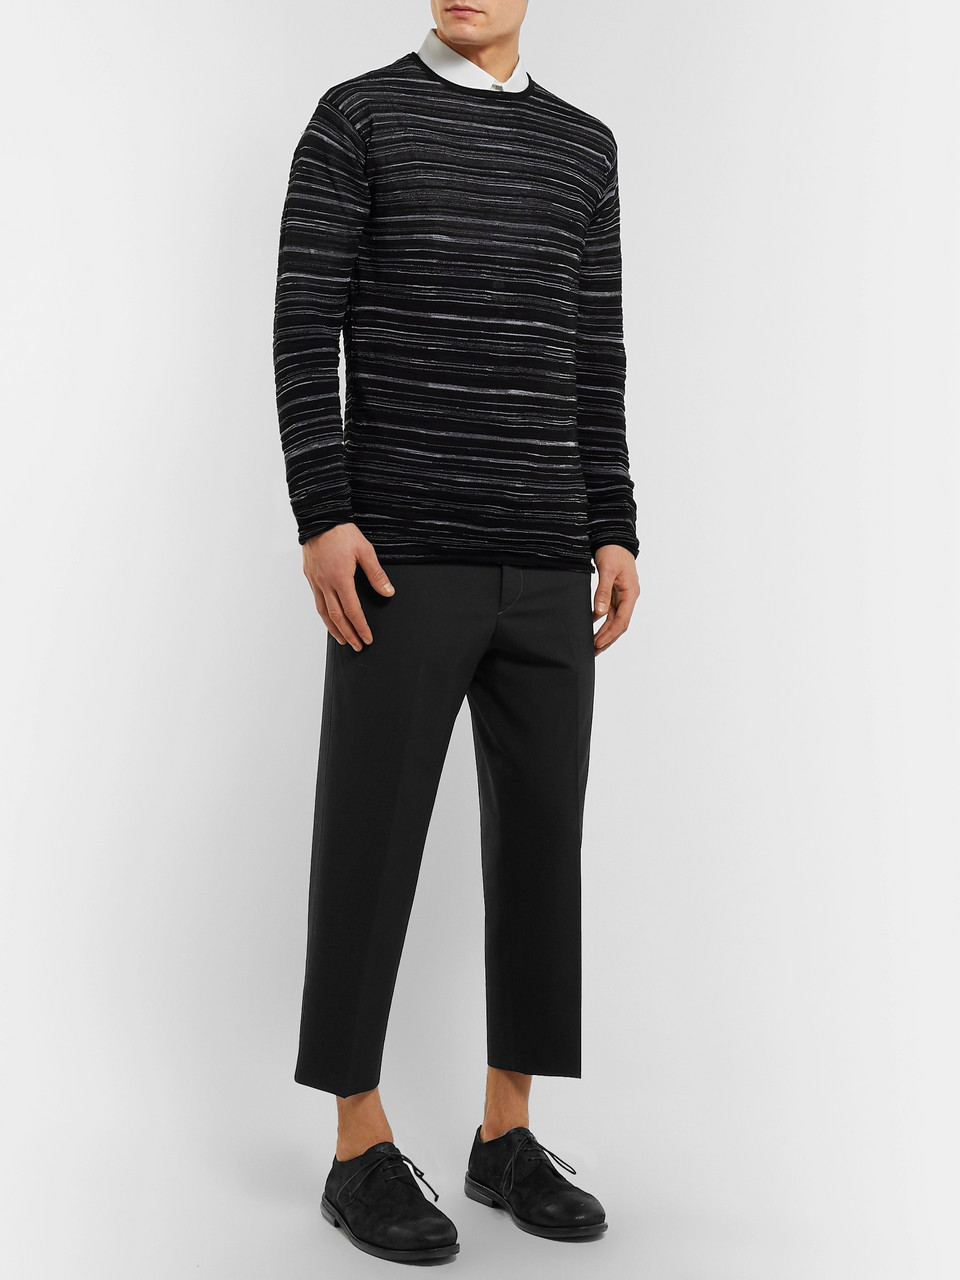 Isabel Benenato Slim-Fit Striped Knitted Sweater